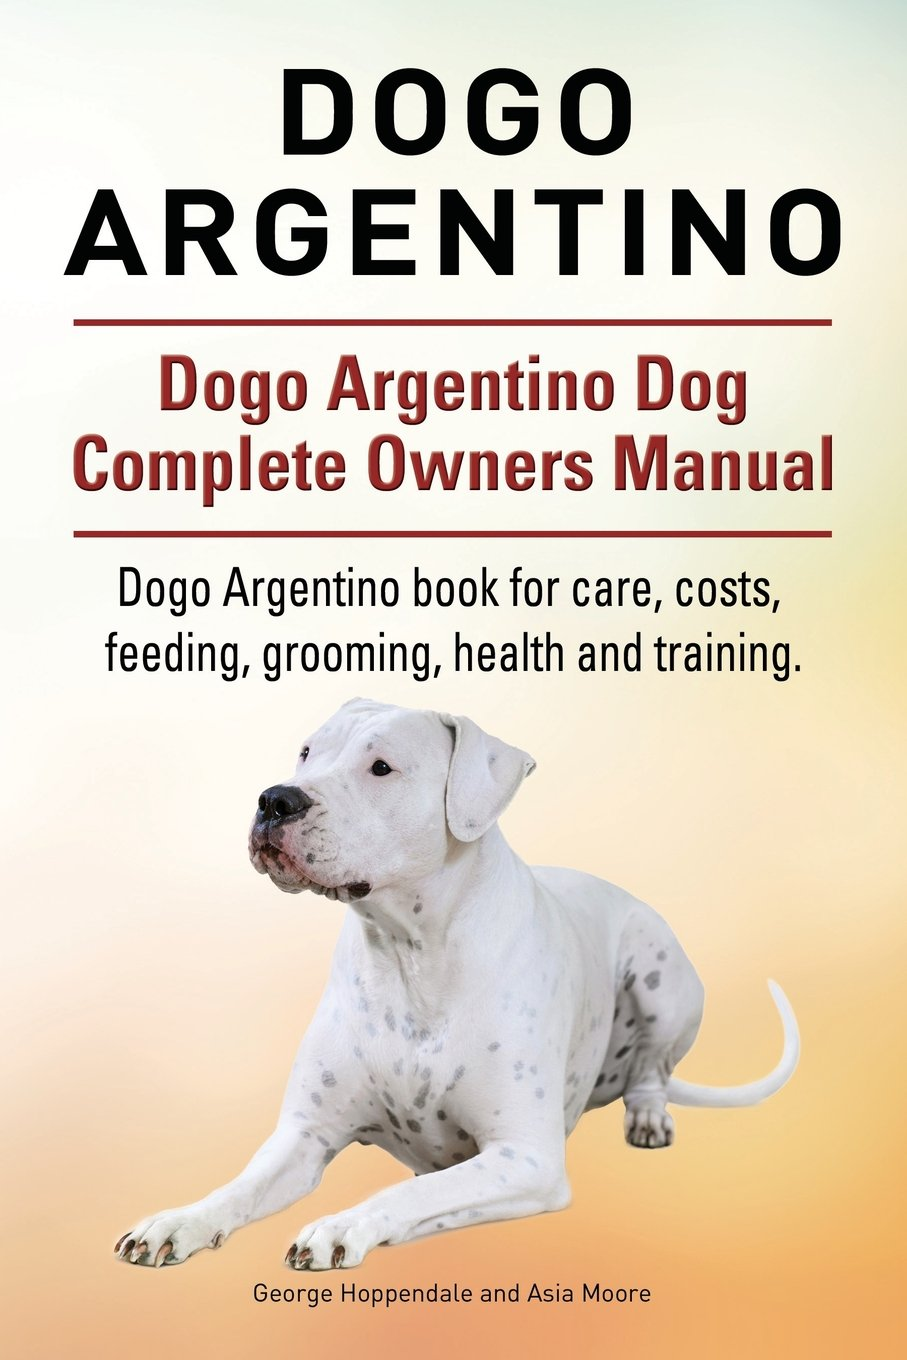 Dogo argentino dogo argentino dog complete owners manual dogo dogo argentino dogo argentino dog complete owners manual dogo argentino book for care costs feeding grooming health and training nvjuhfo Choice Image